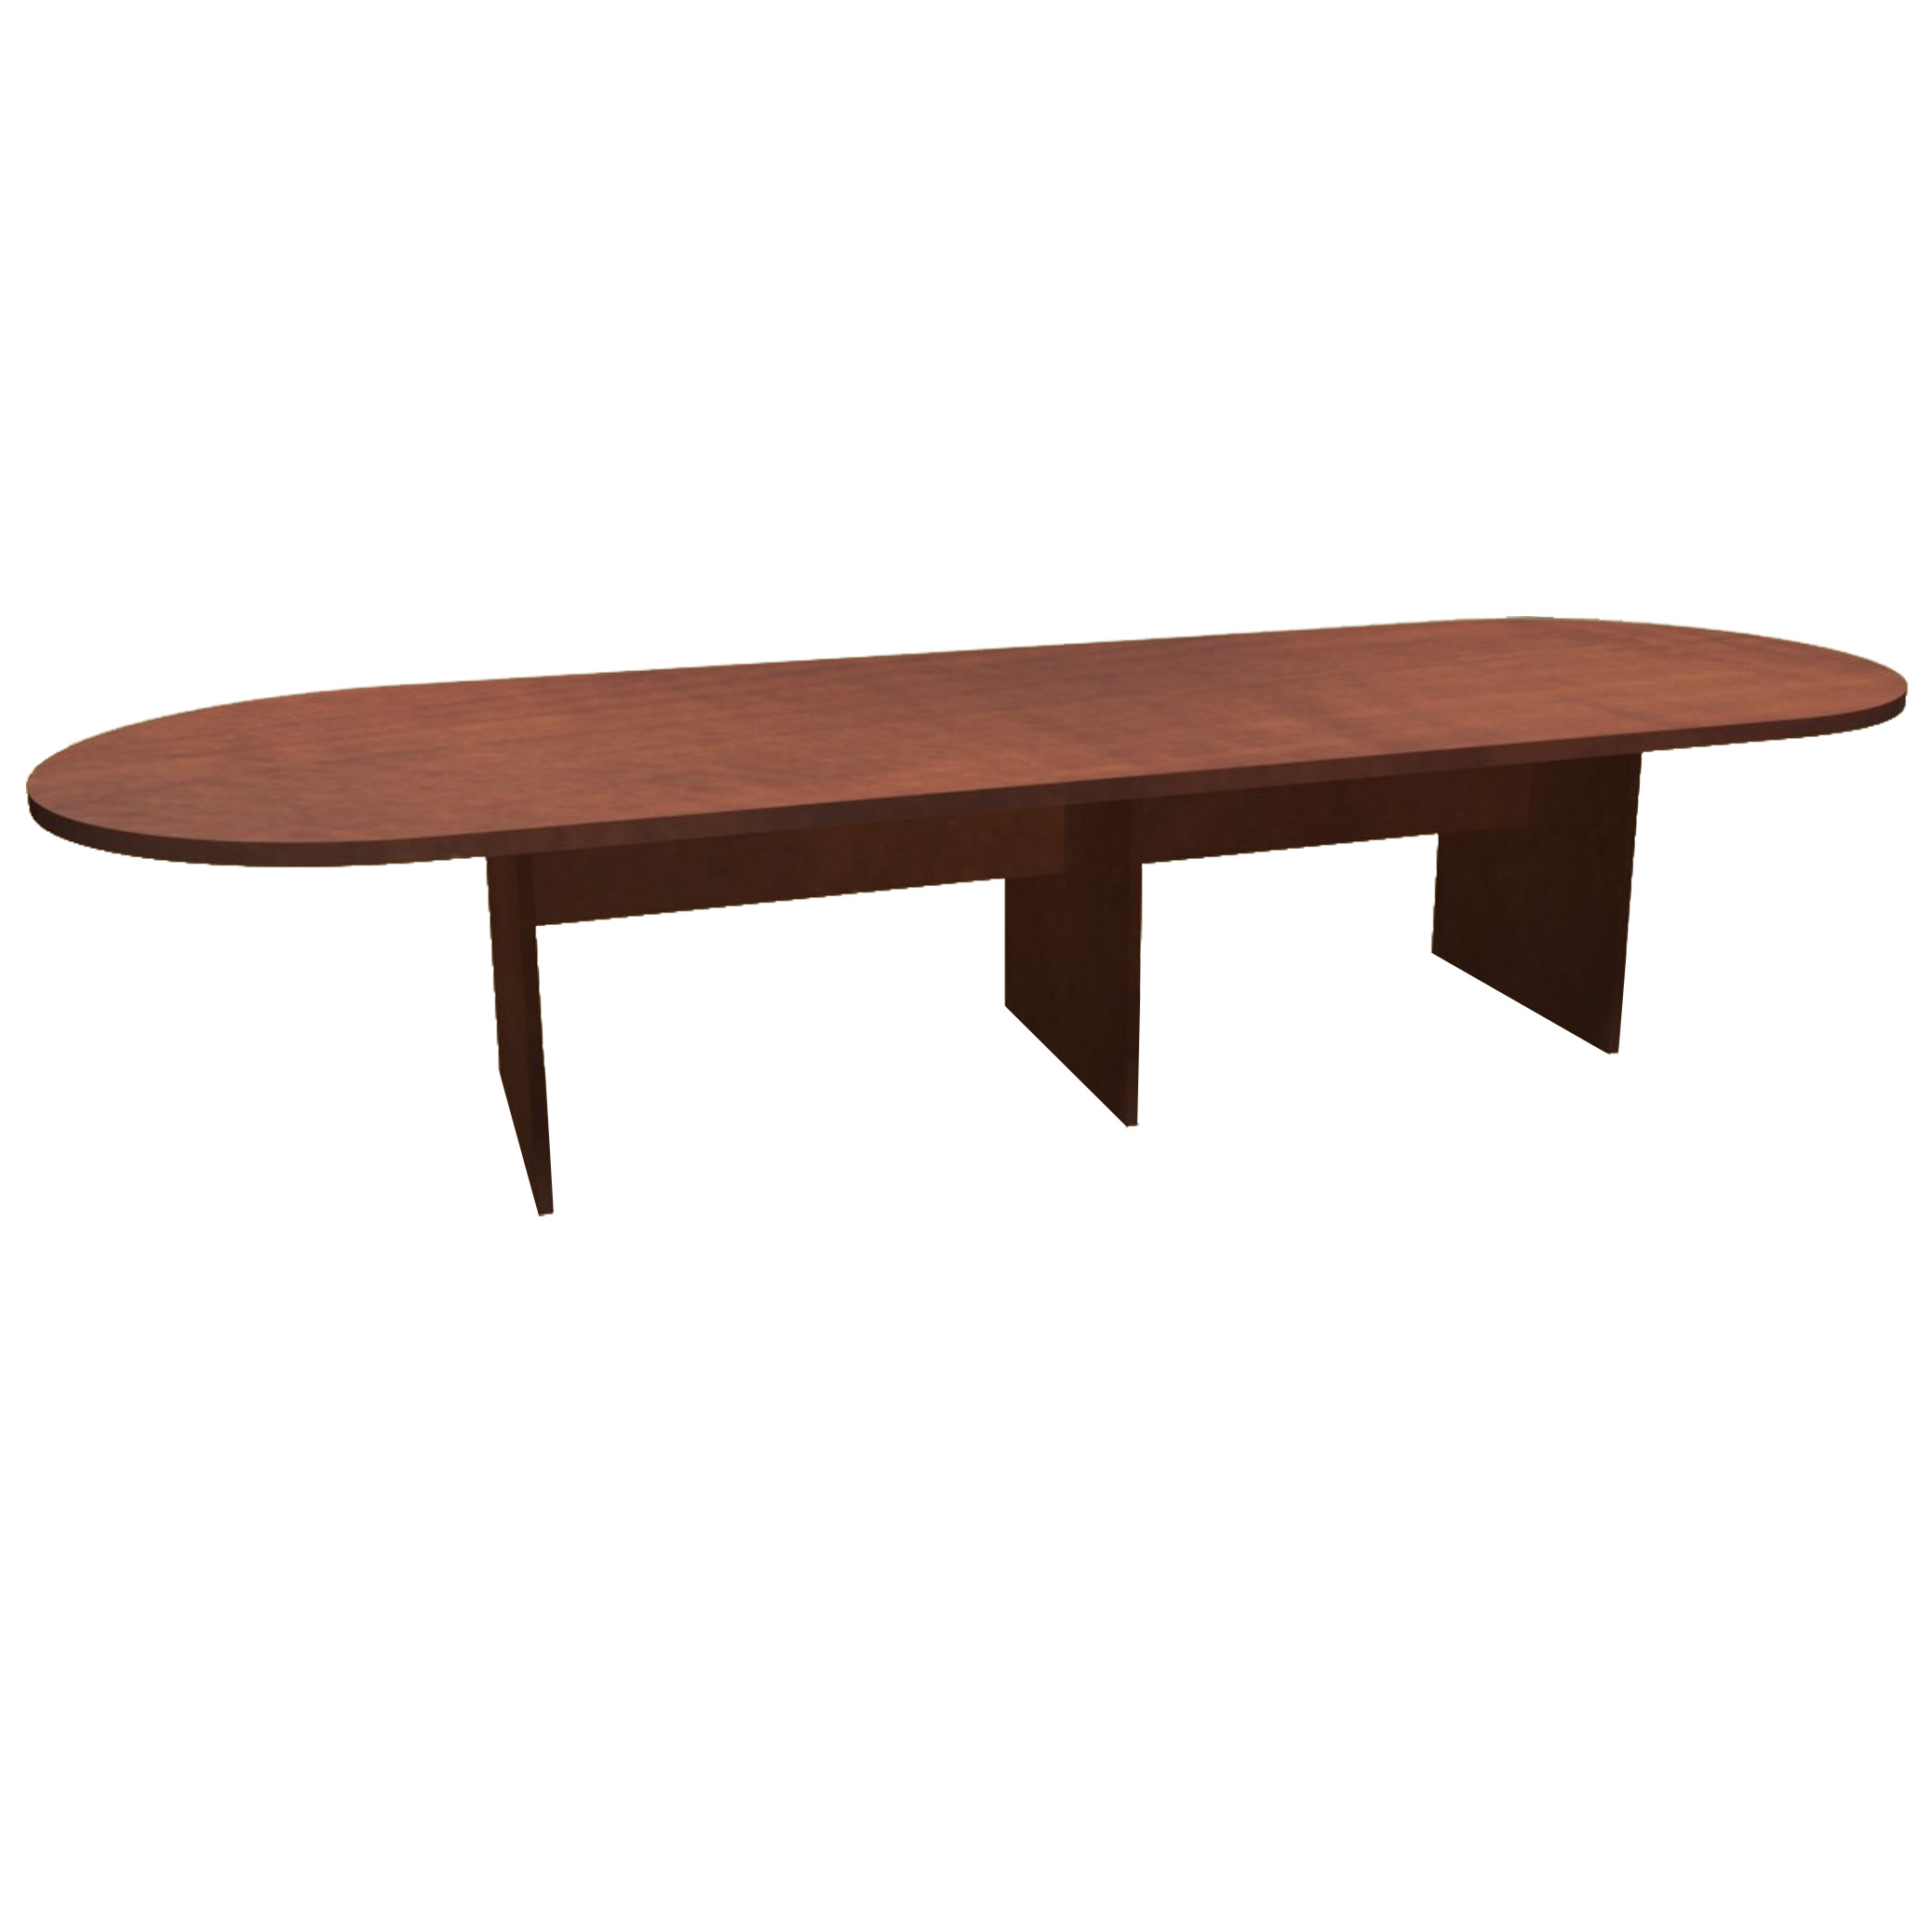 12 39 premiera conference table arthur p o 39 hara for 12 conference table